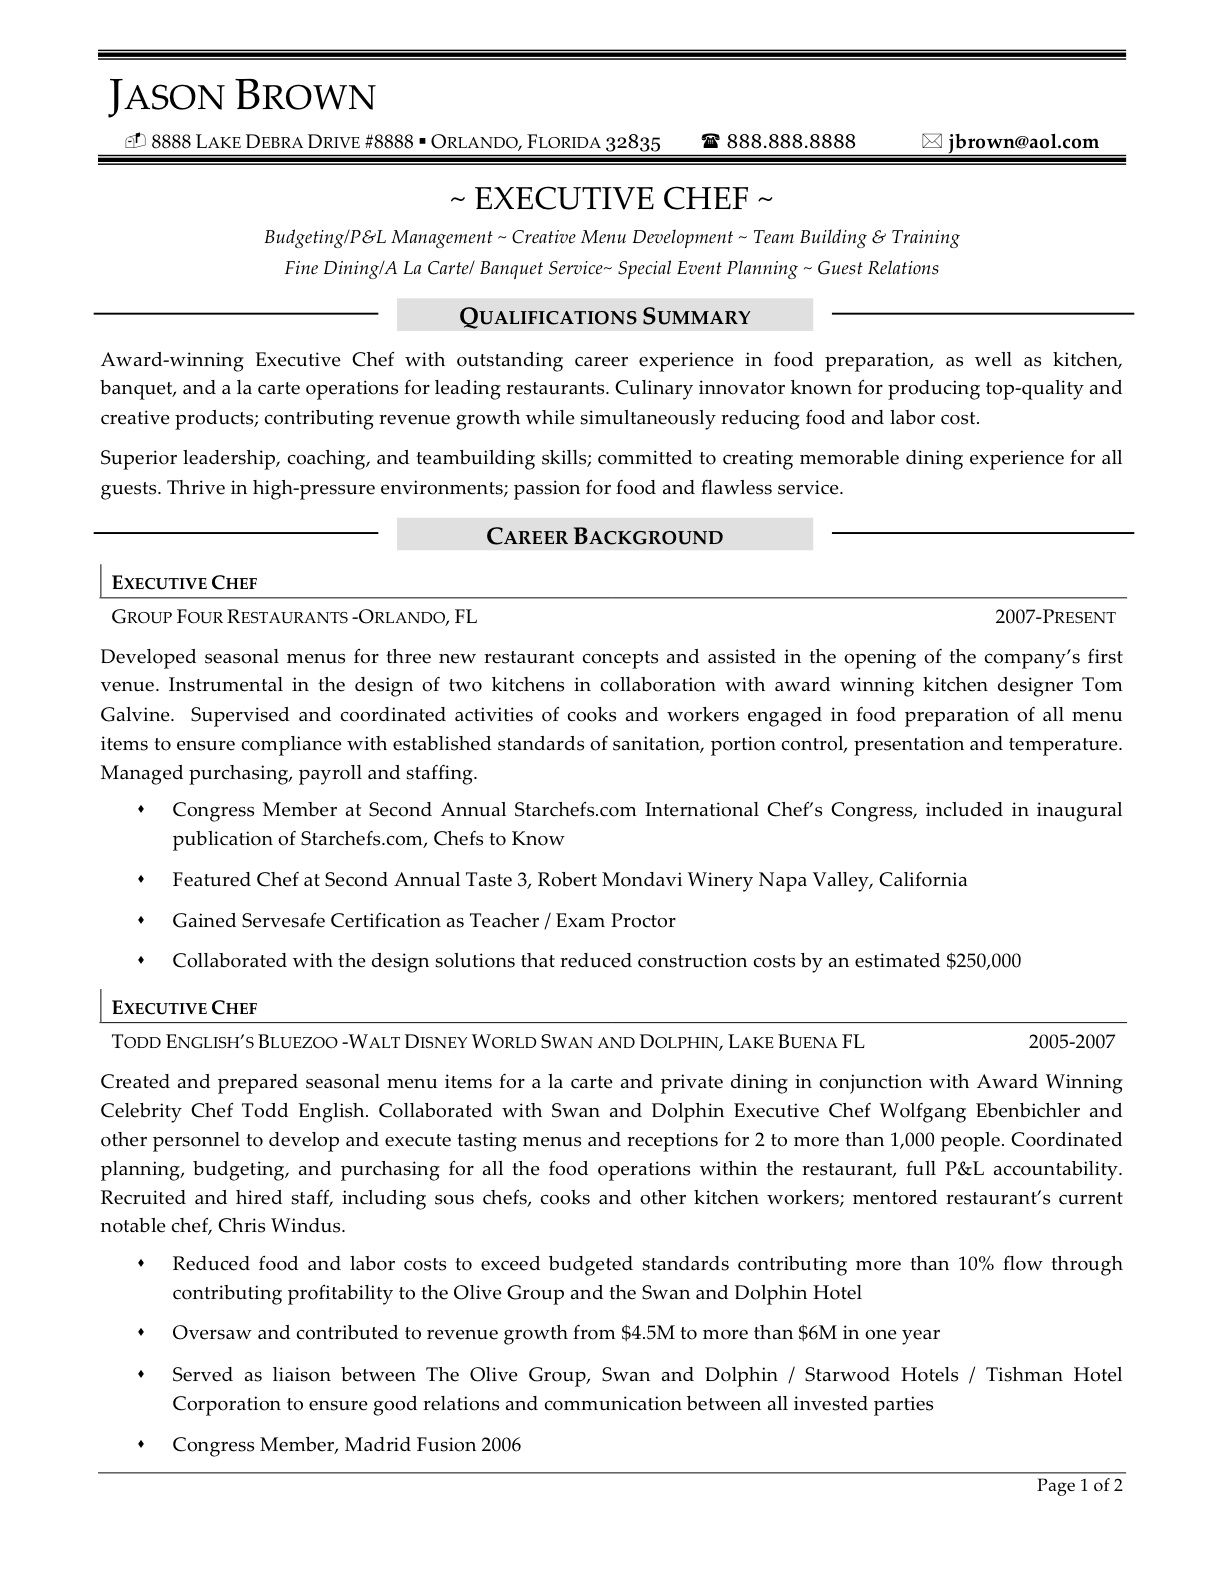 Executive Chef Resume (Sample) | Resume Samples | Pinterest | Best ...